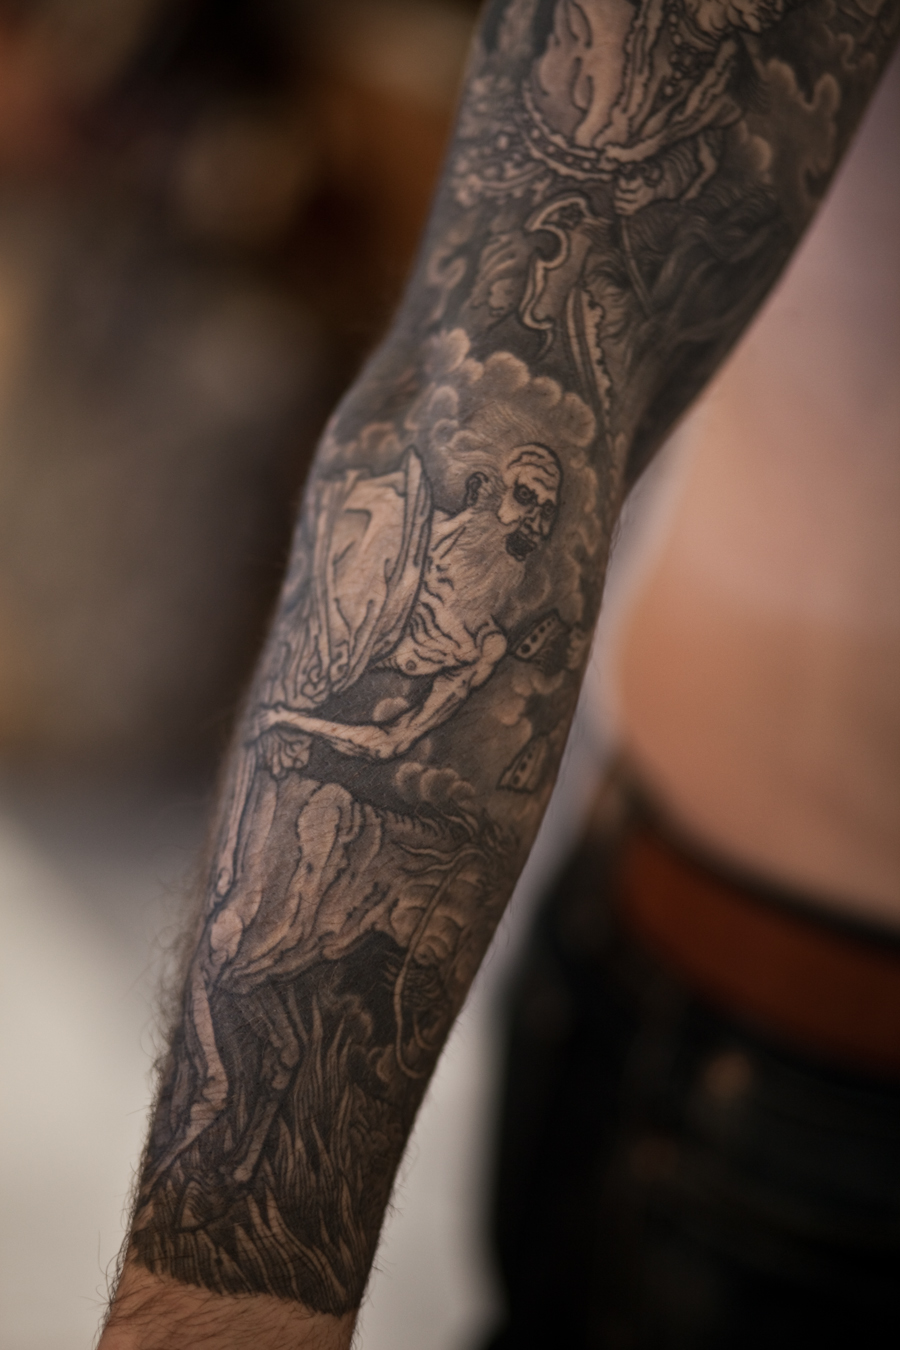 Four Horsemen Of The Apocalypse Sleeve Tattoo Thomas Hooper 2011 Nyc